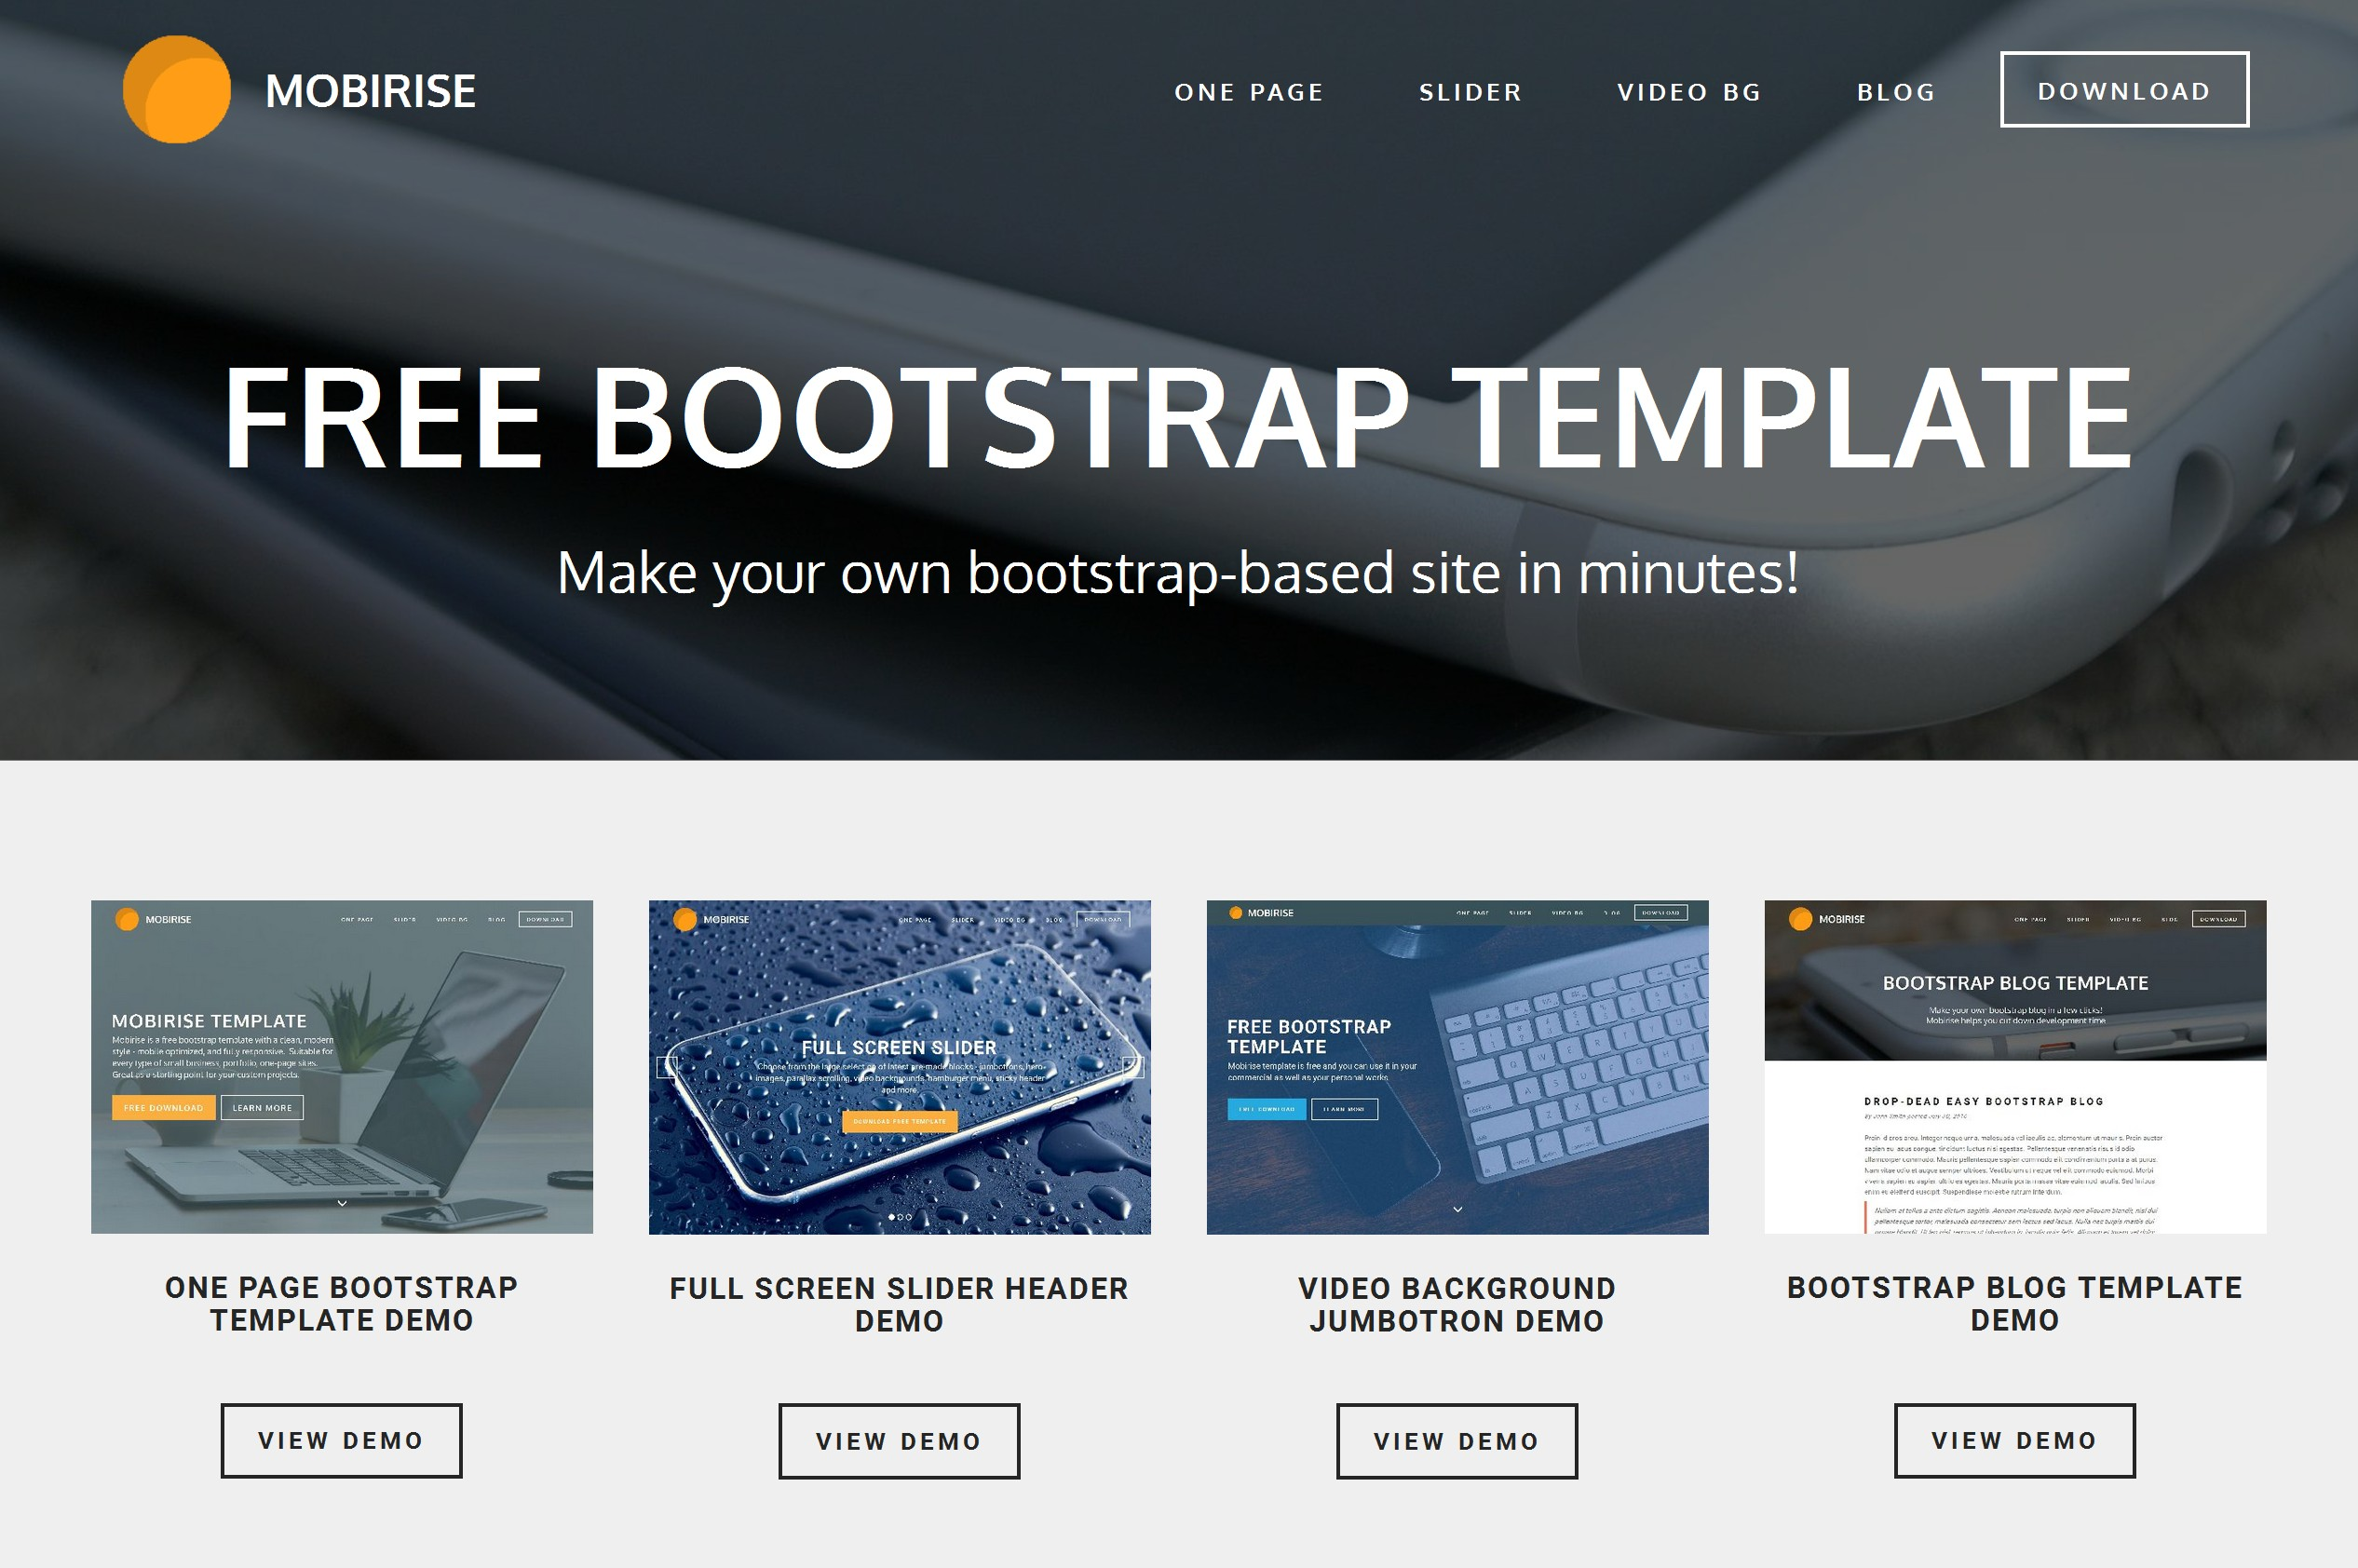 Free bootstrap template for mobile friendly websites for Mobile site template free download